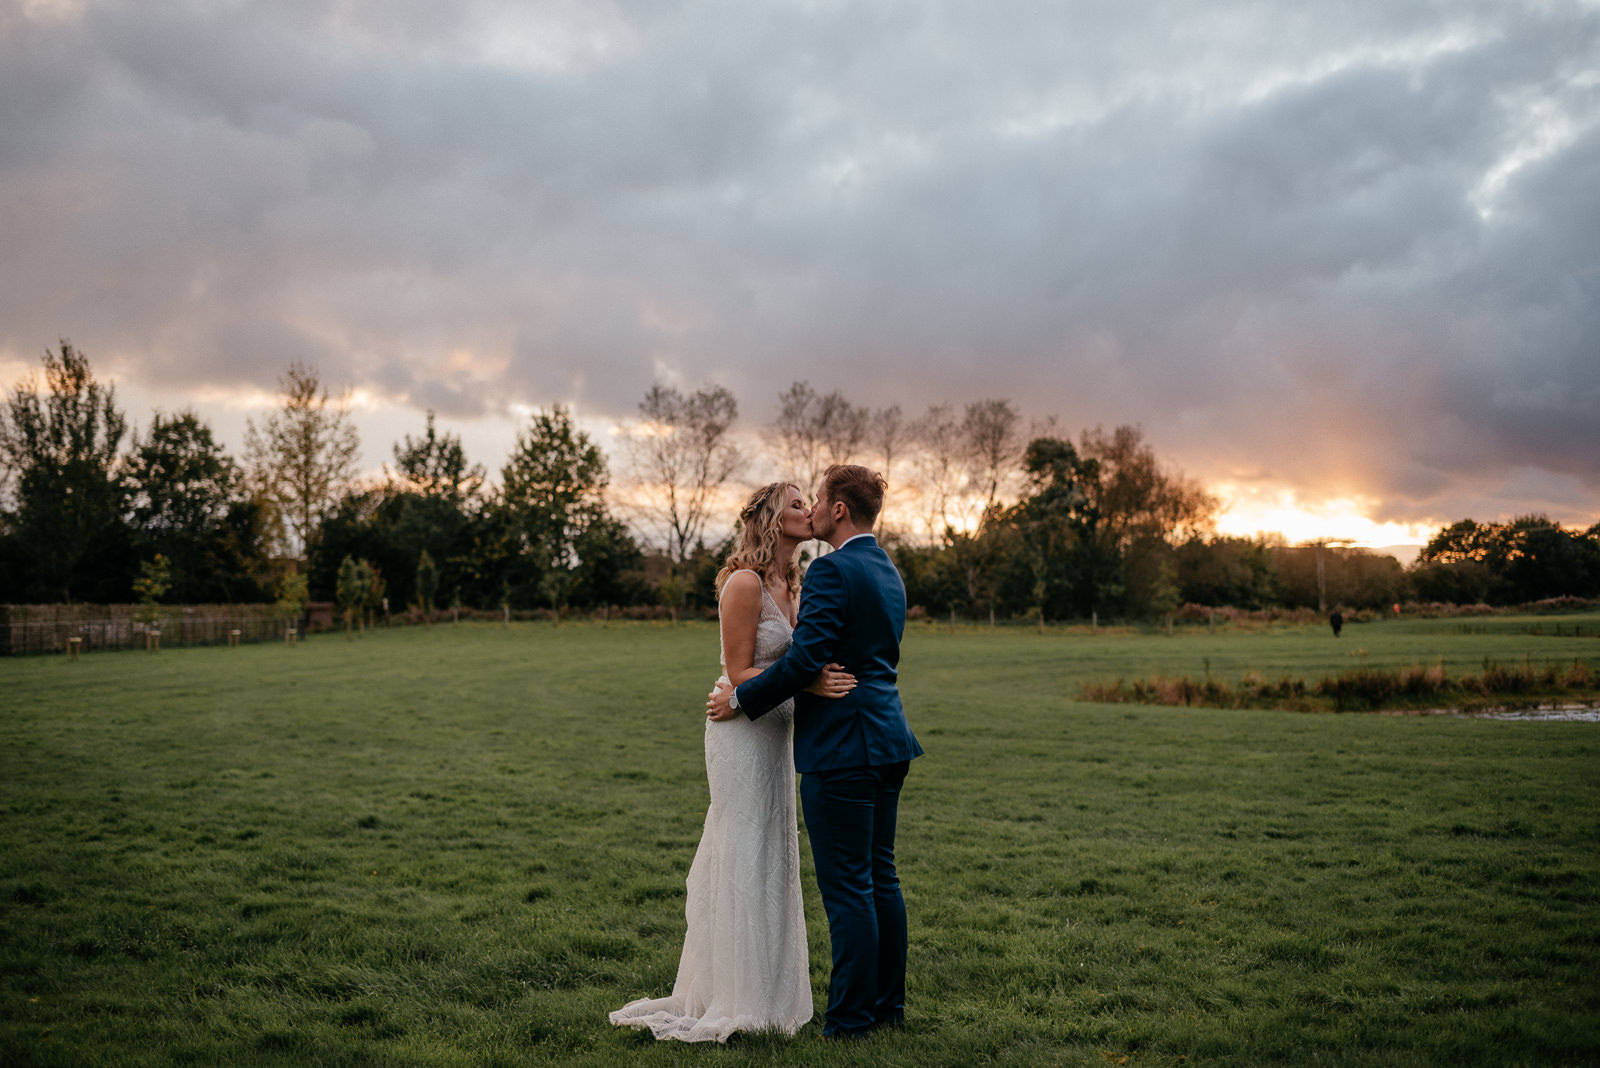 Wiltshire bride and groom take a break for sunset portraits at Glove Factory